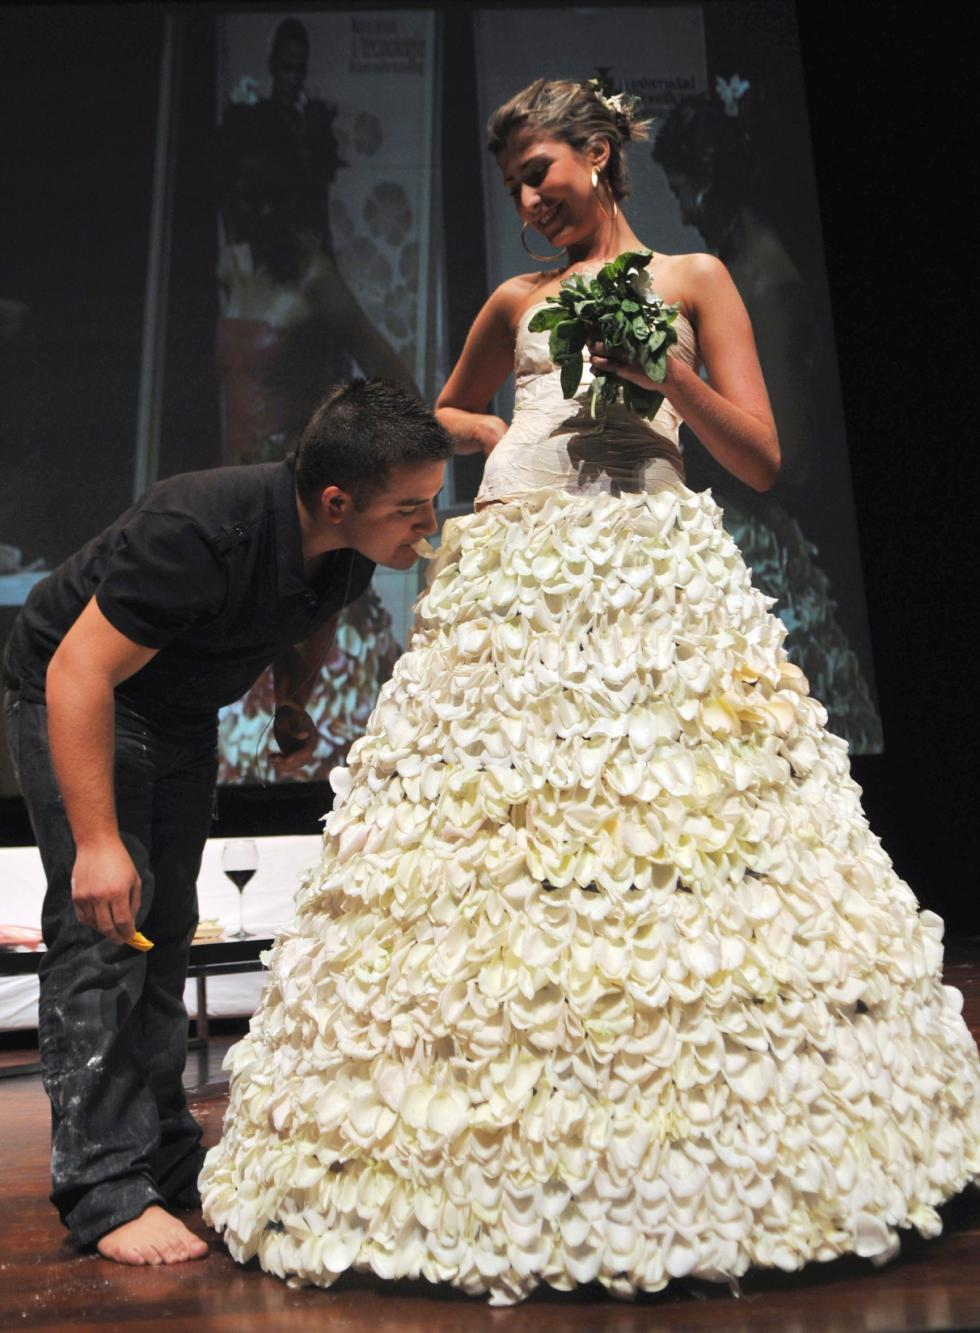 Simply Creative: Bizzare Wedding Dress